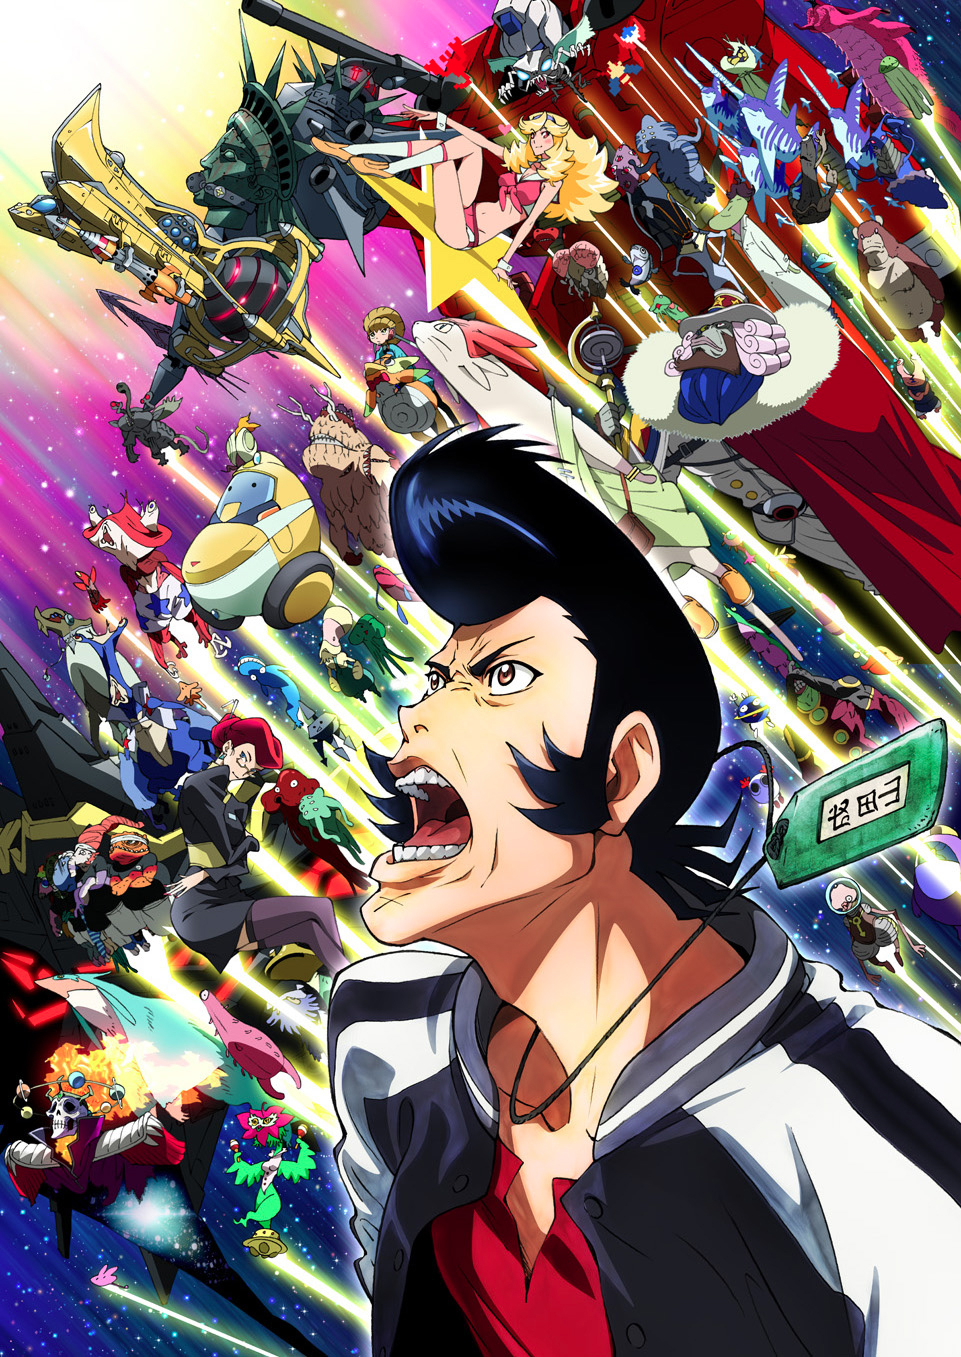 japanese-animator-trashes-english-dub-of-space-dandy-on-twitter.jpg